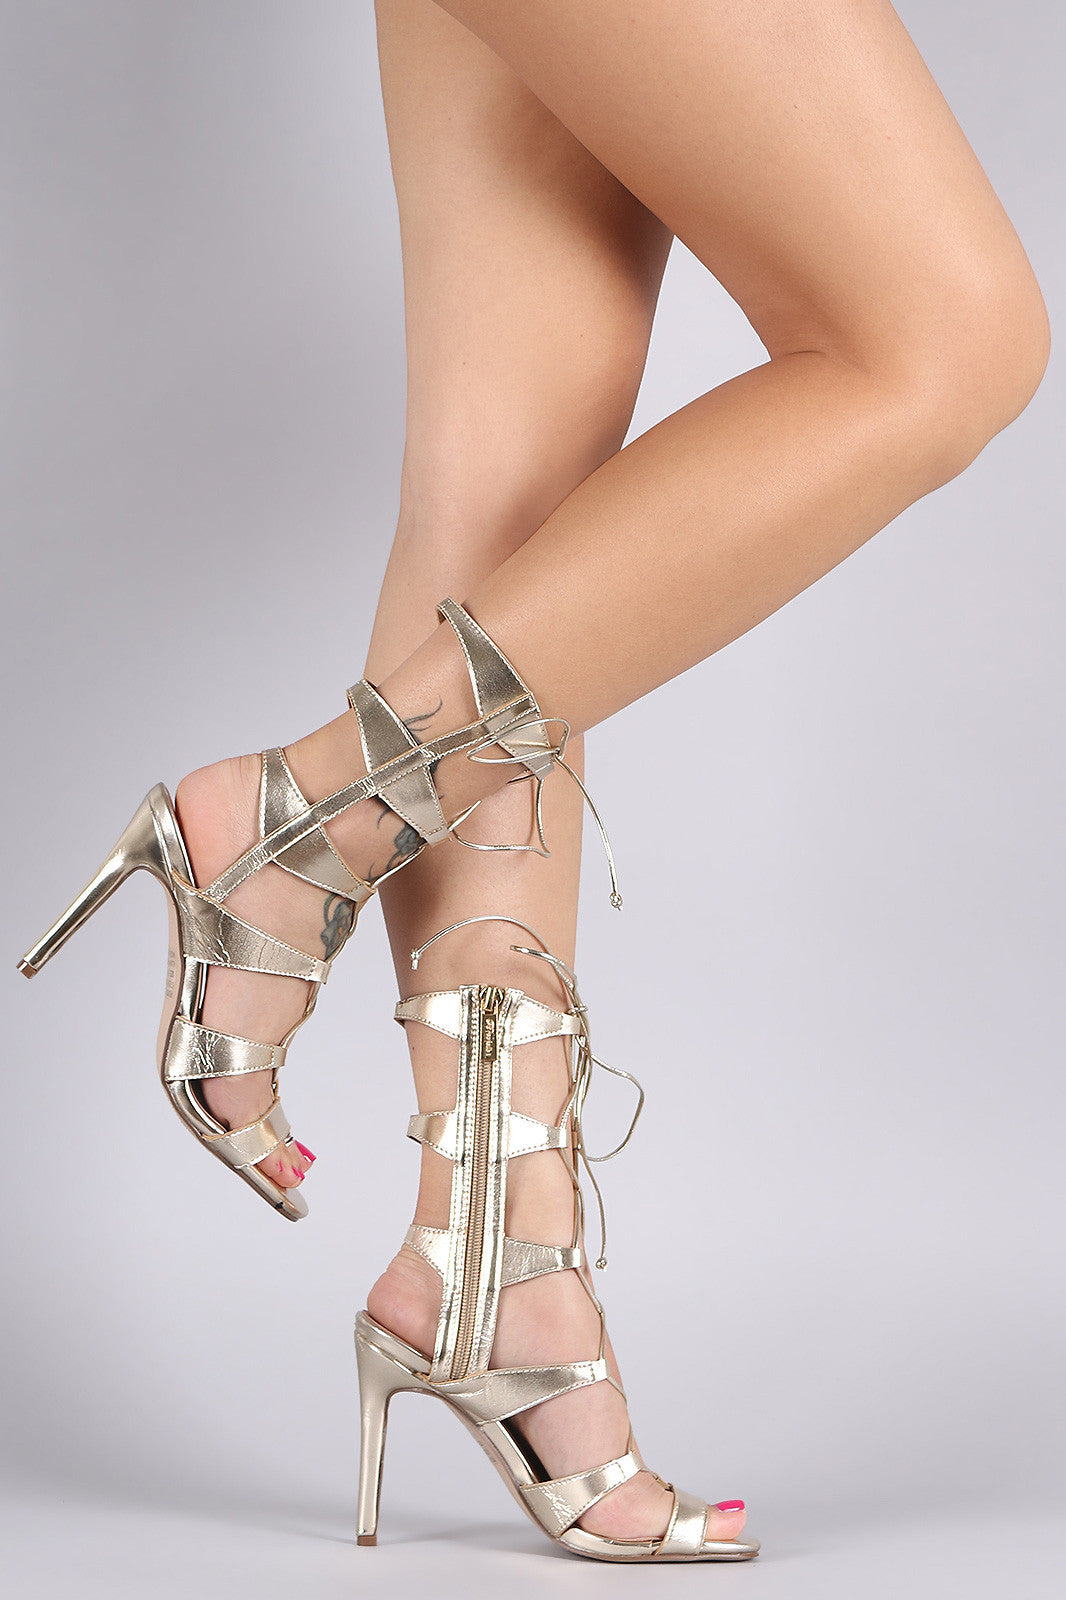 Breckelle Strappy Corset Lace Up Stiletto Heel - Thick 'N' Curvy Shop - 8